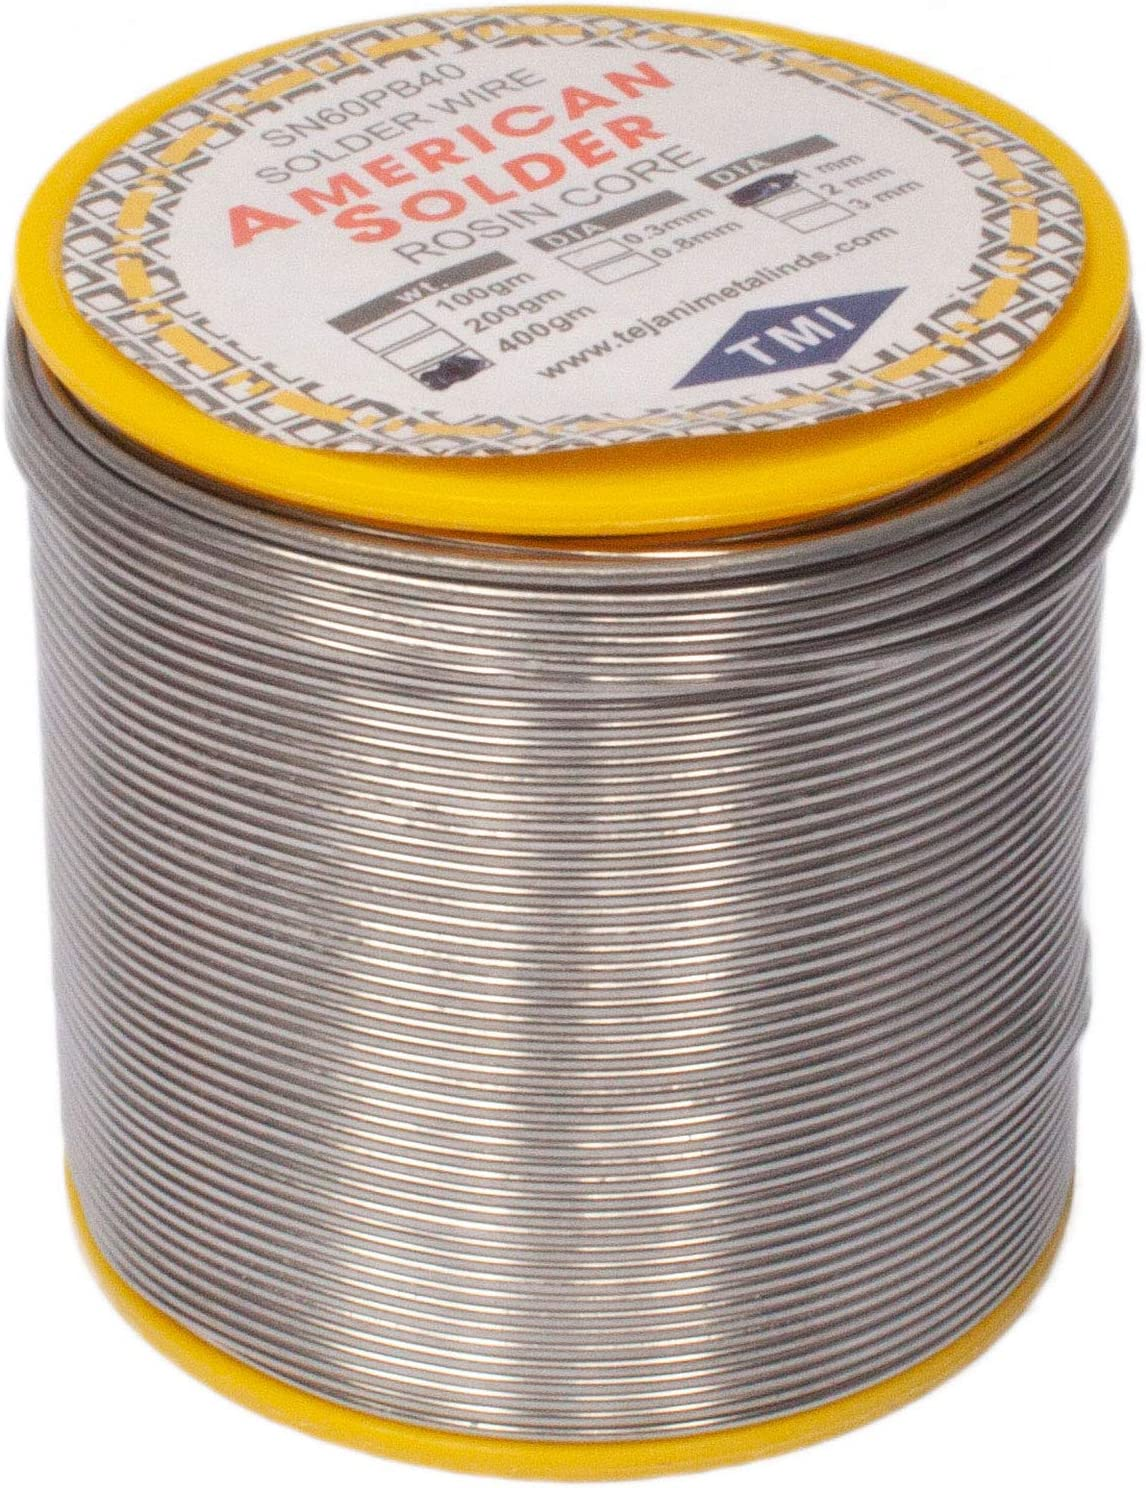 New 400G 1mm 60//40 Tin Lead Solder Rosin Flux Wire Roll Soldering USA